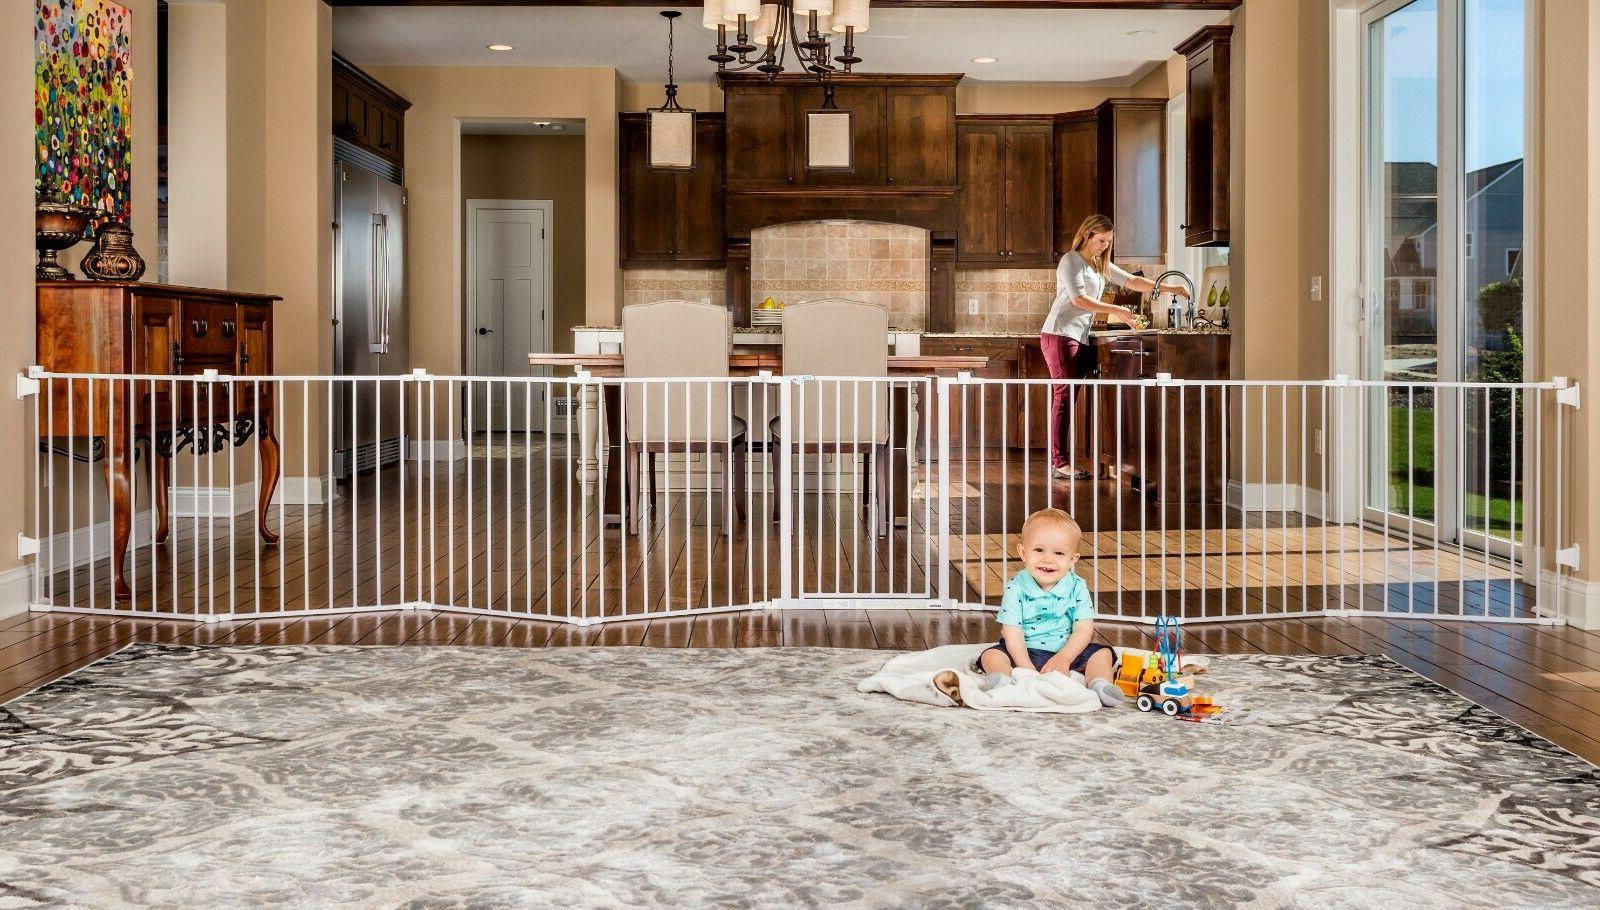 Regalo 192 Inch Super Wide Baby Gate and Play Yard Wall Moun